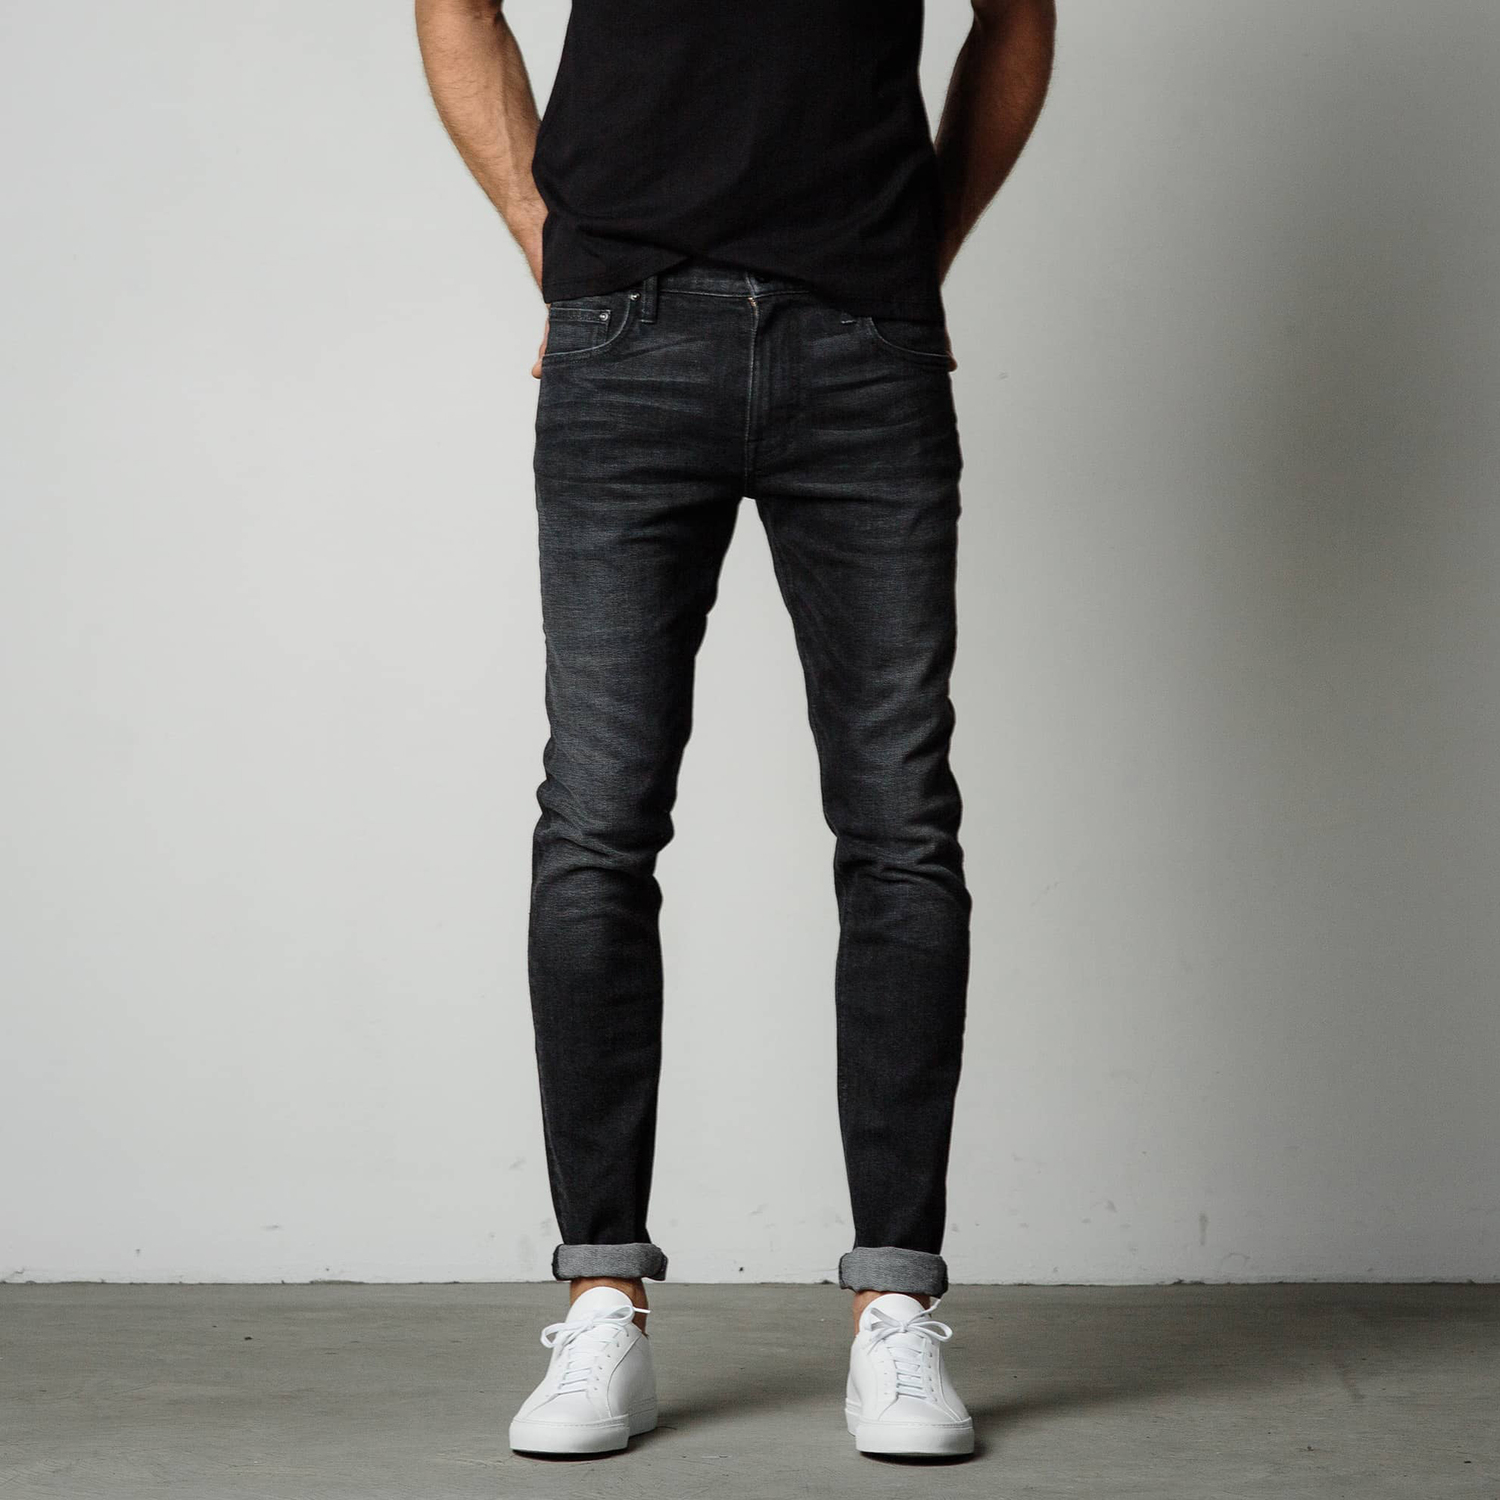 Mens Skinny Jeans In Faded Black | DSTLD